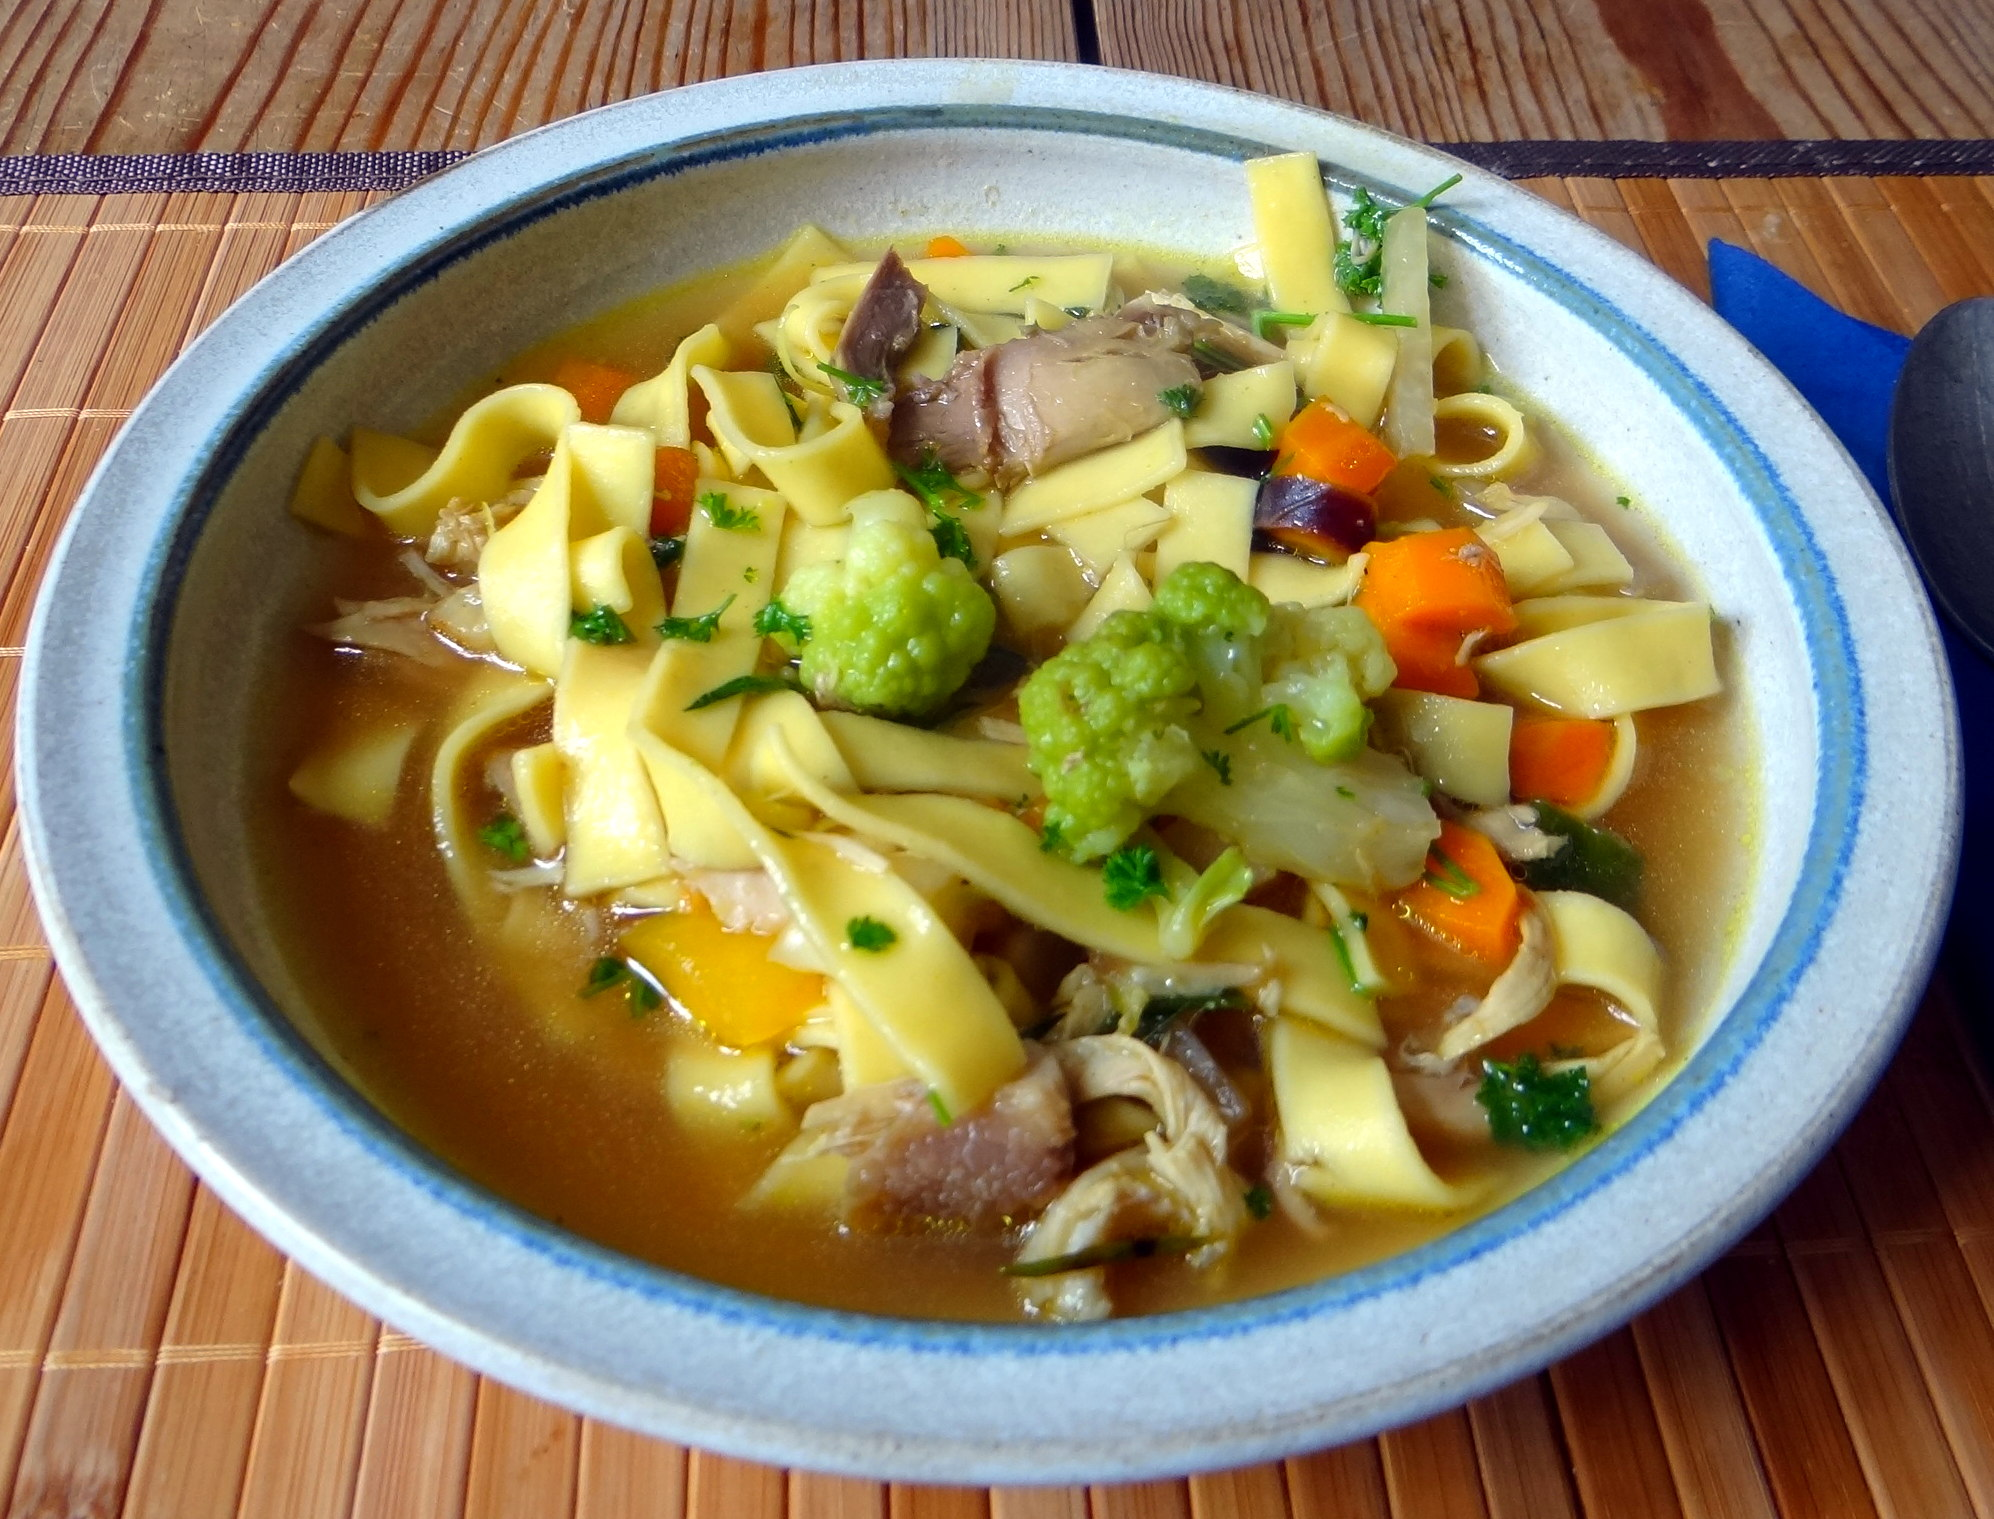 Nudelsuppe-4..7 (13)